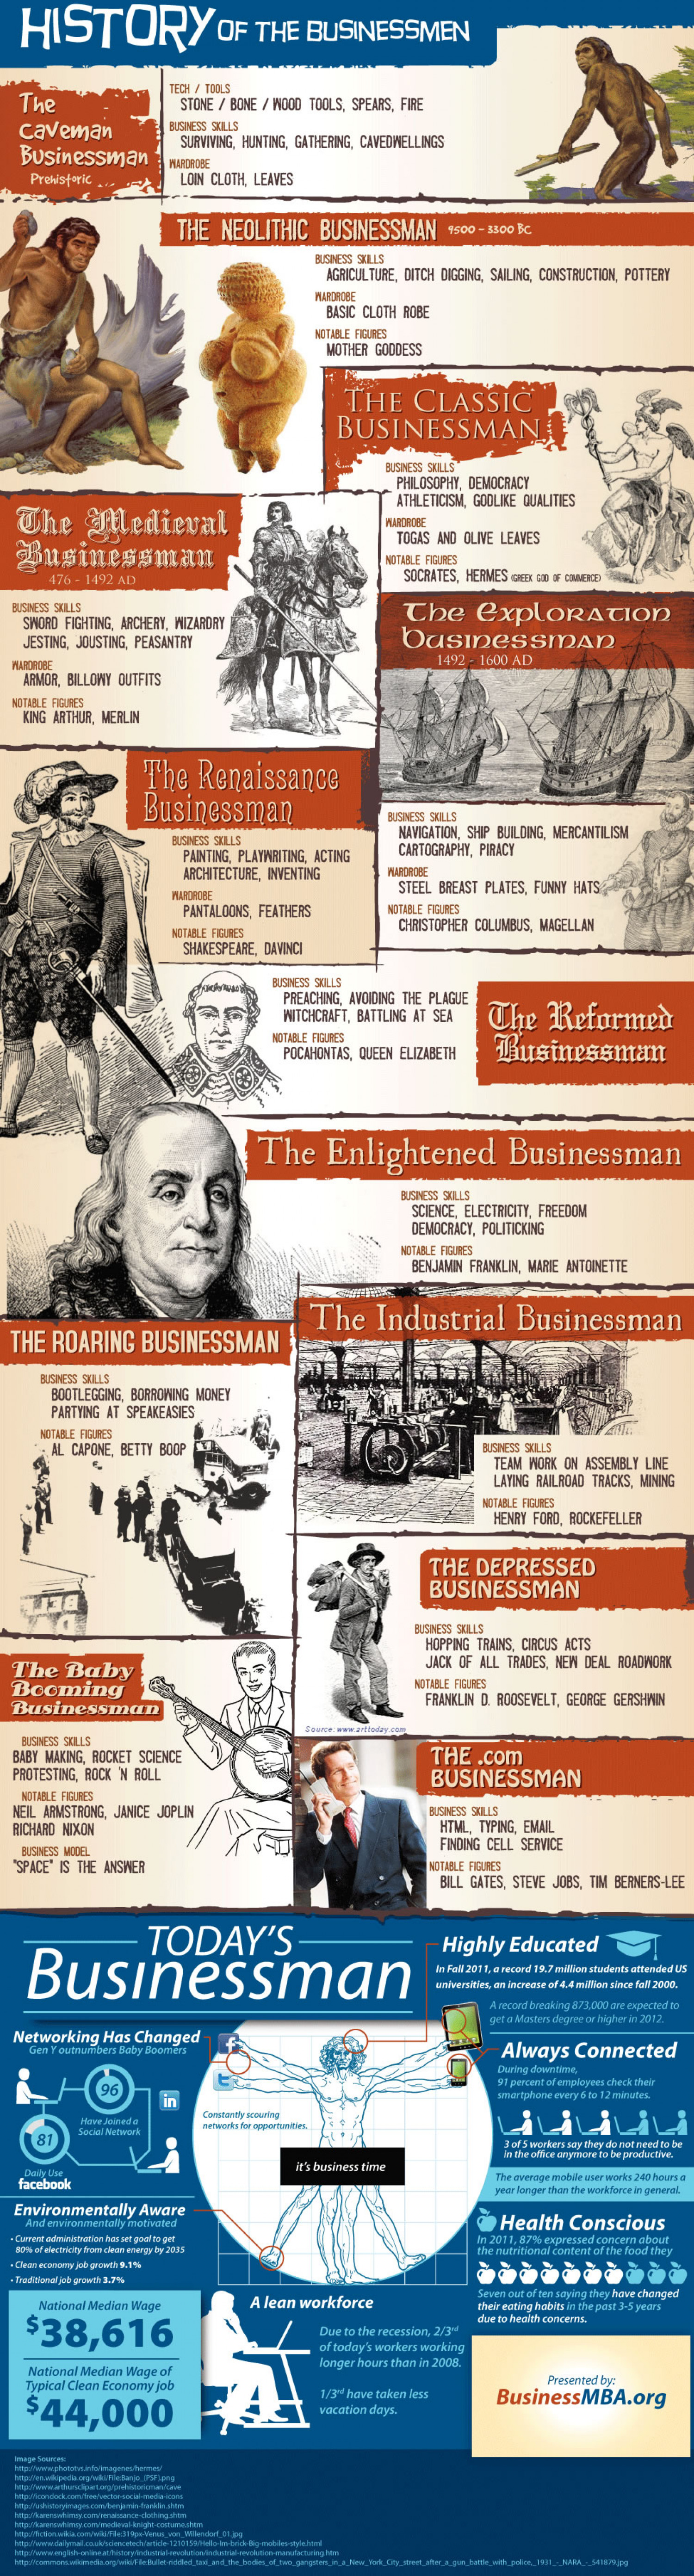 History of the Businessman Infographic